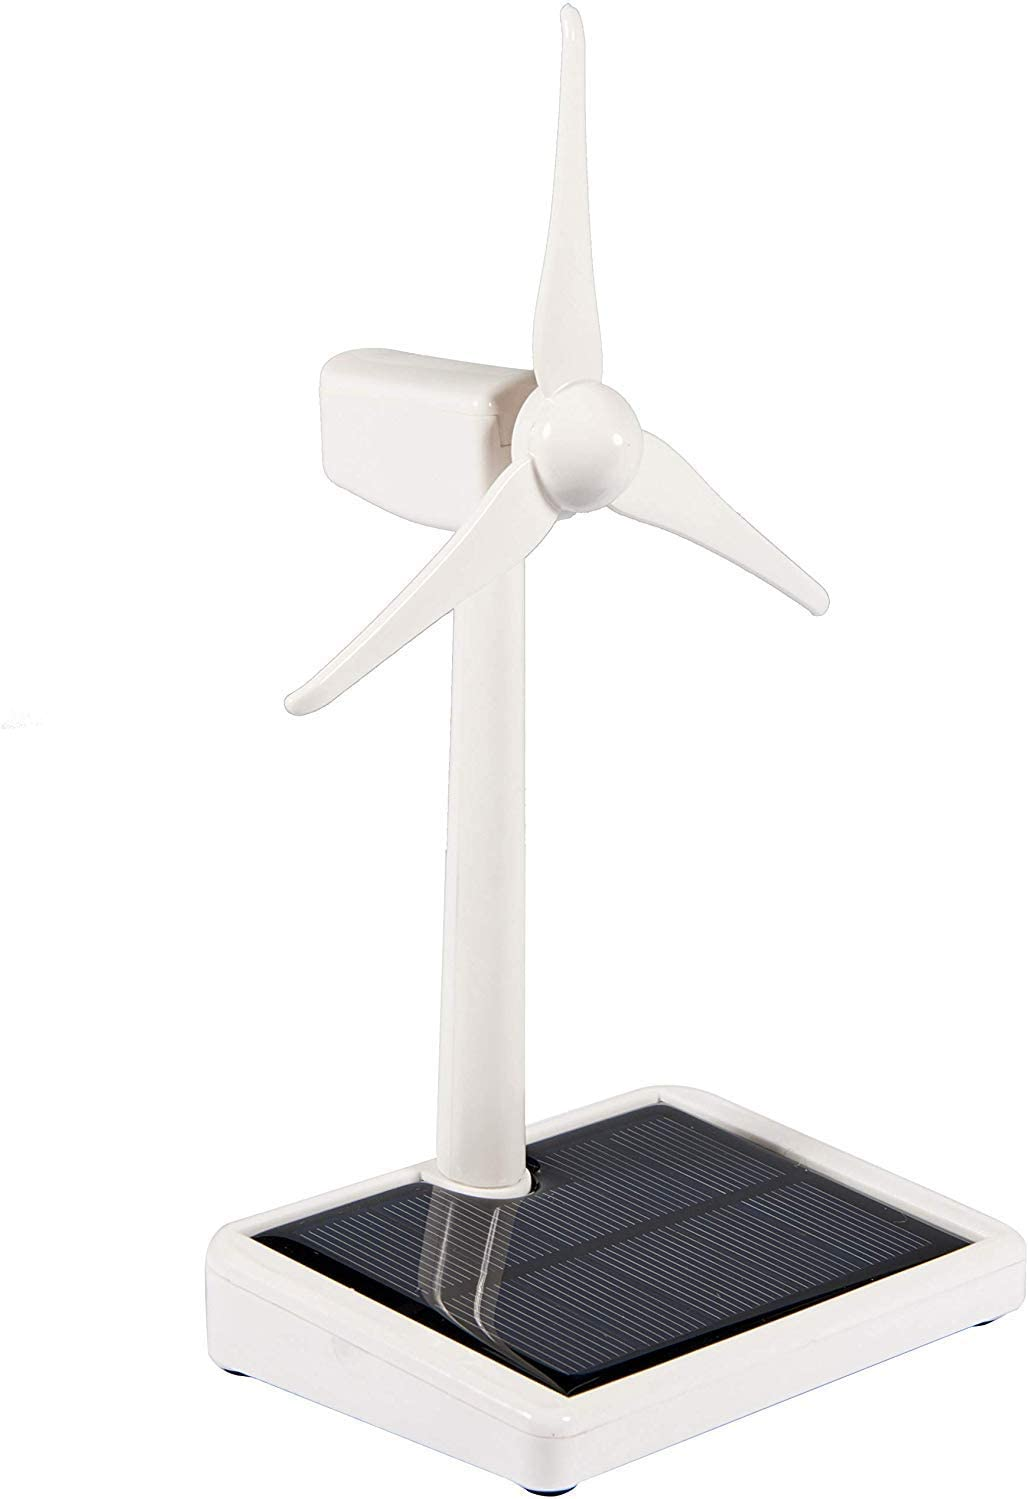 Solar Powered Windmill Mini Solar Energy Windmill Toy Solar Windmill Toy Kids Desktop Decoration for Gifts Kids Friends